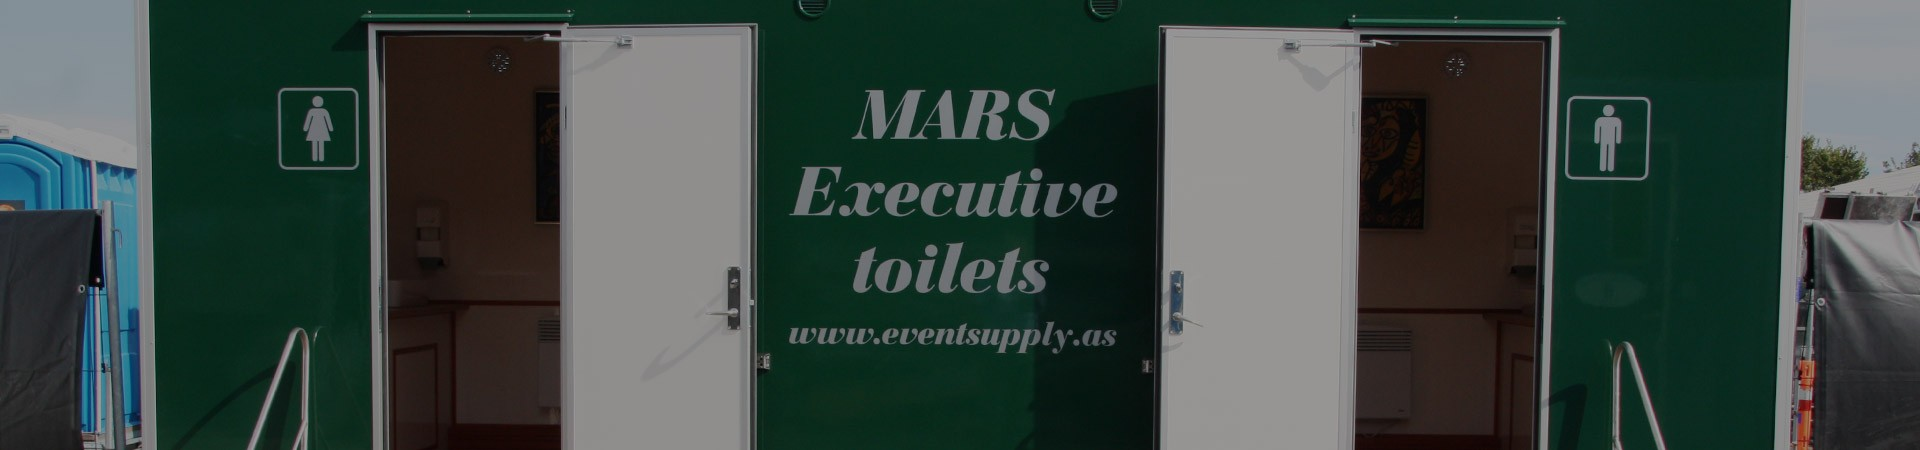 Mars eventsupply